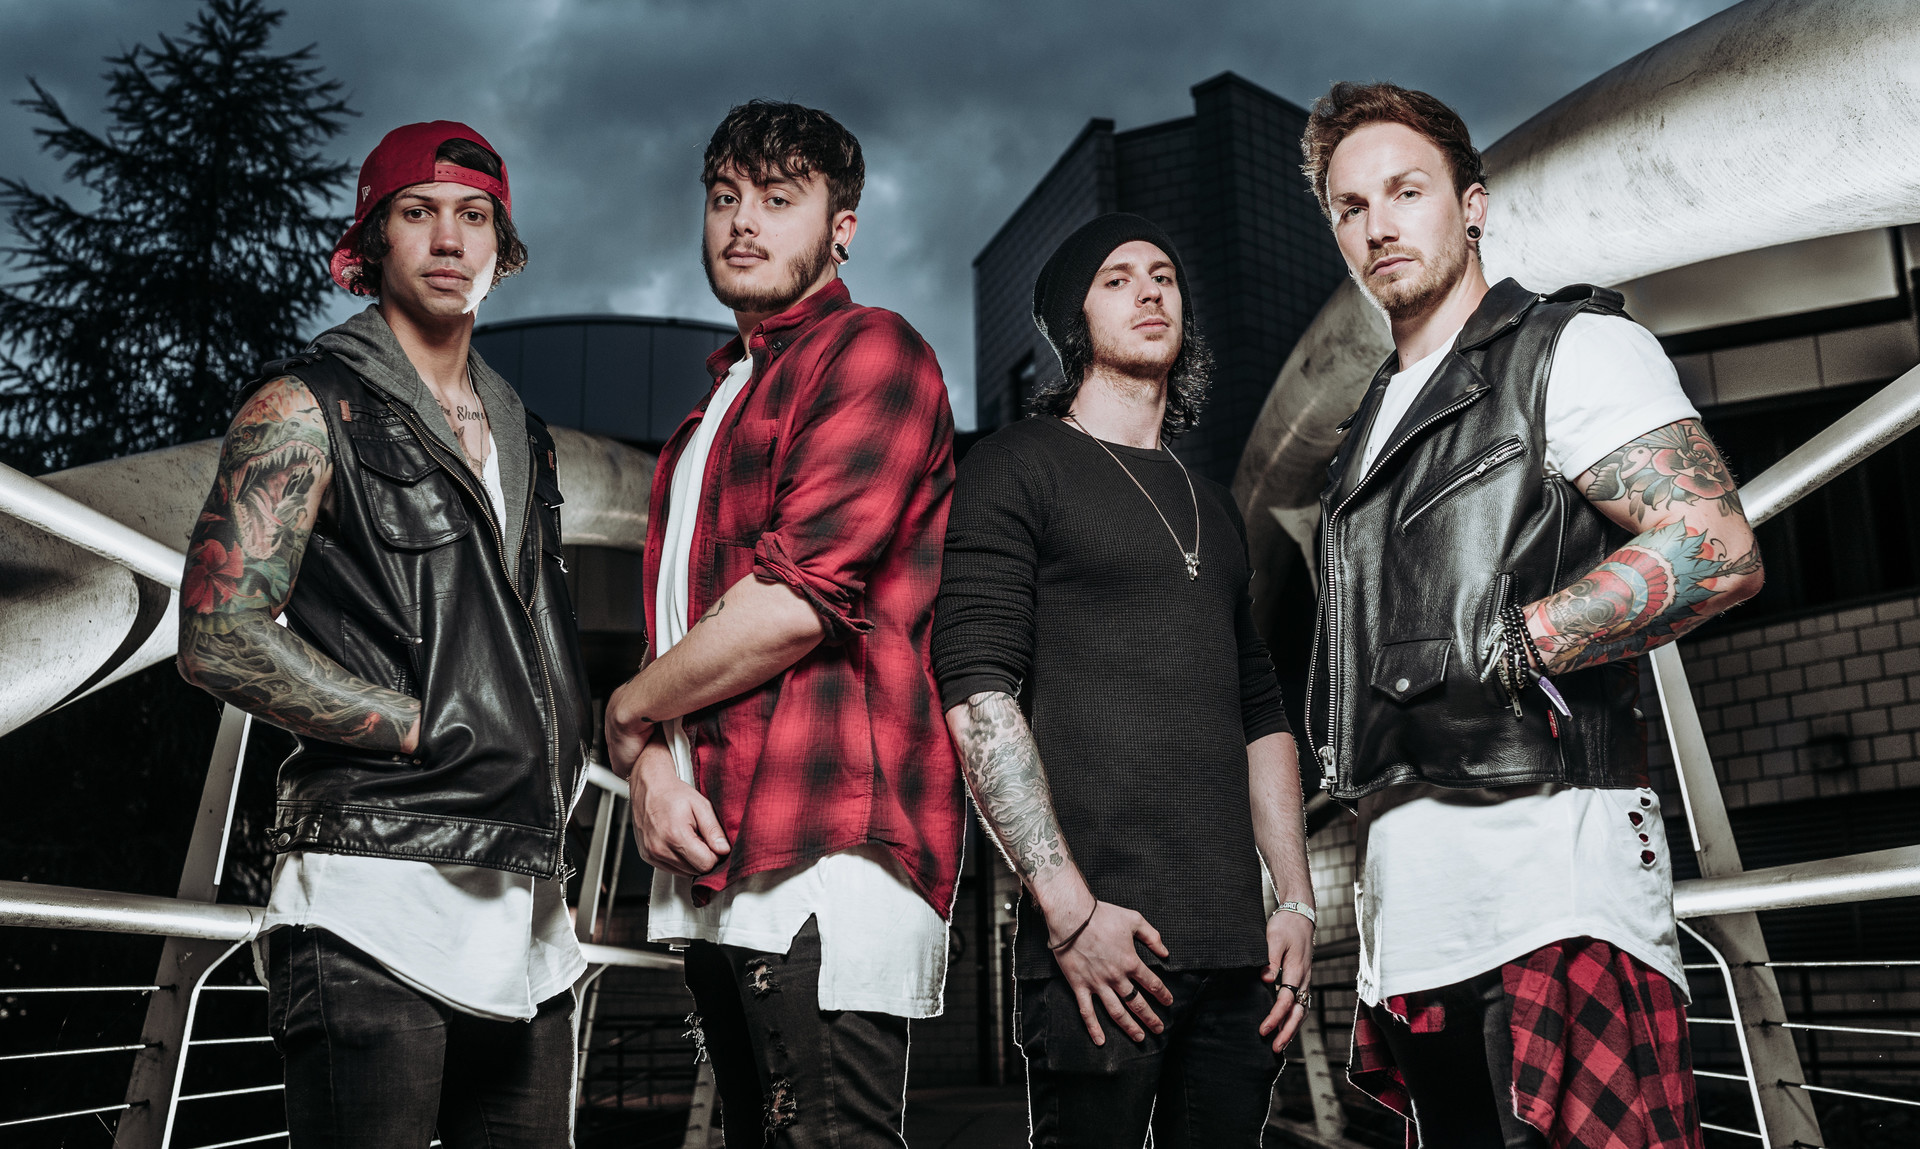 If You Dig Old School Asking Alexandria, You Need To Hear InVisions' Debut Album - Features - Rock Sound Magazine